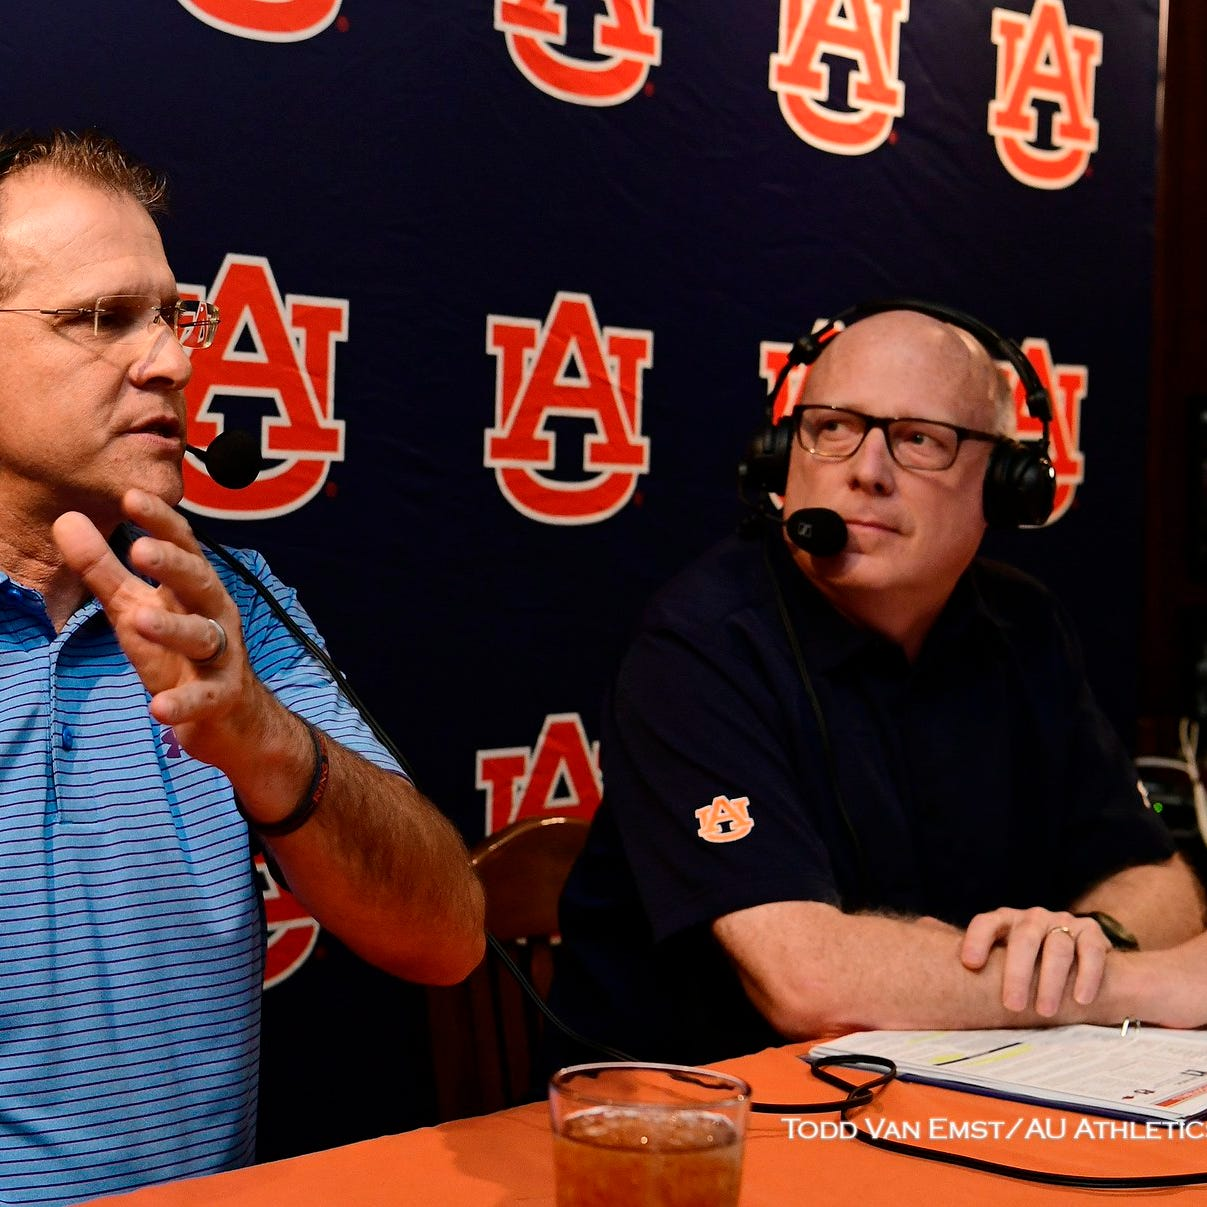 Remembering Rod Bramblett, the Voice of the Auburn Tigers, through legendary calls and impact on fans